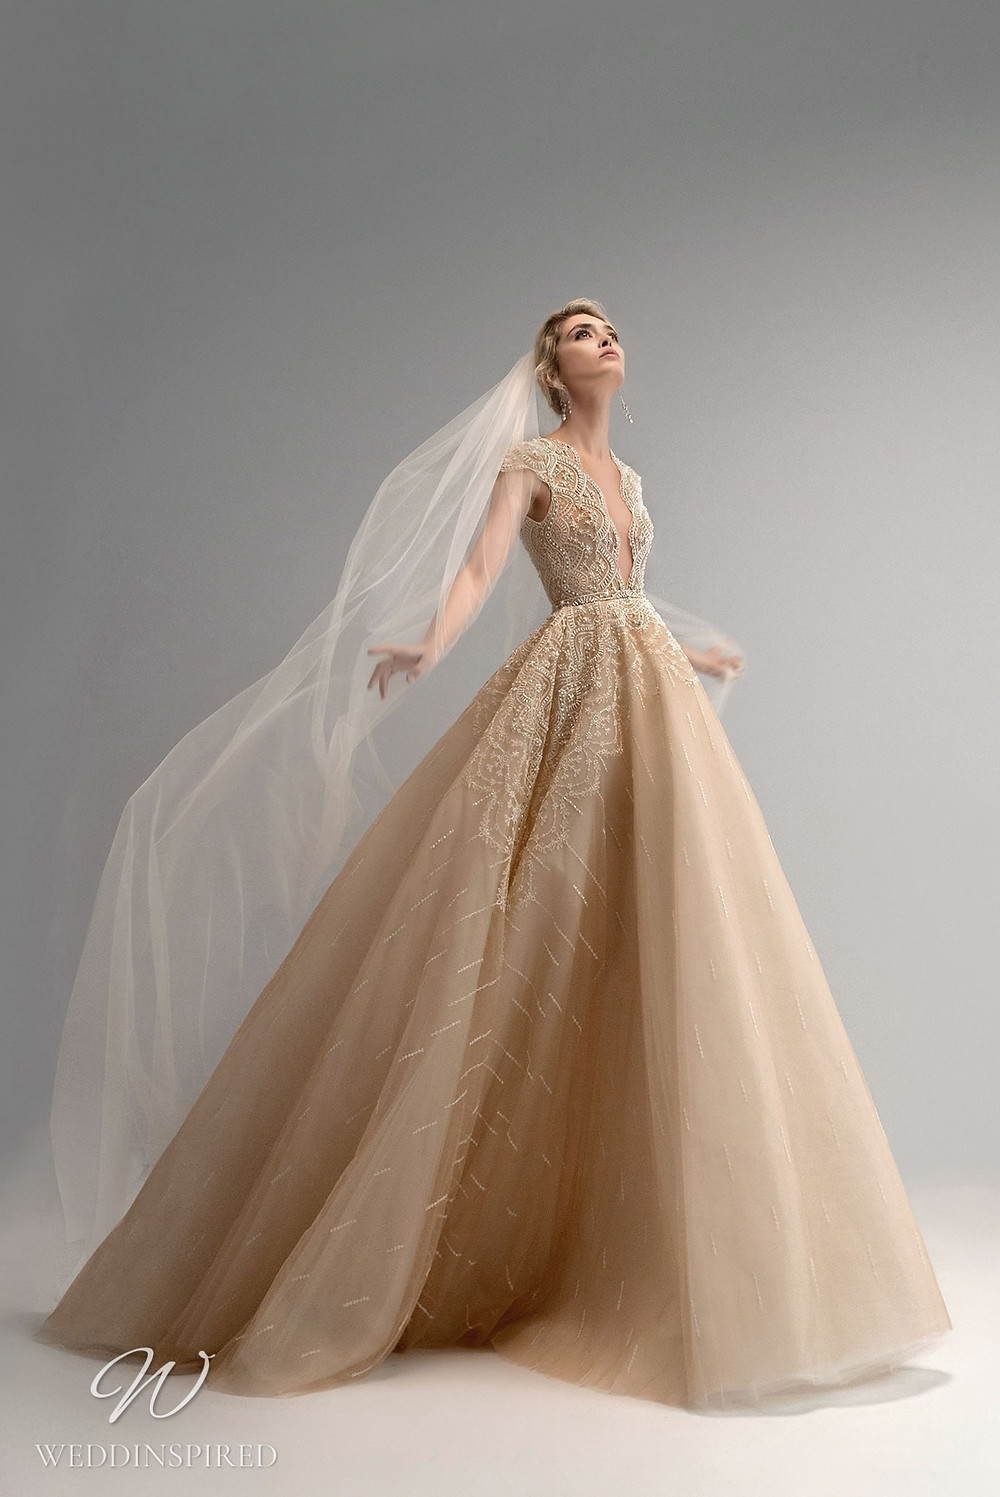 An Ersa Atelier 2021 gold ball gown wedding dress with a tulle skirt and a lace bodice with beading